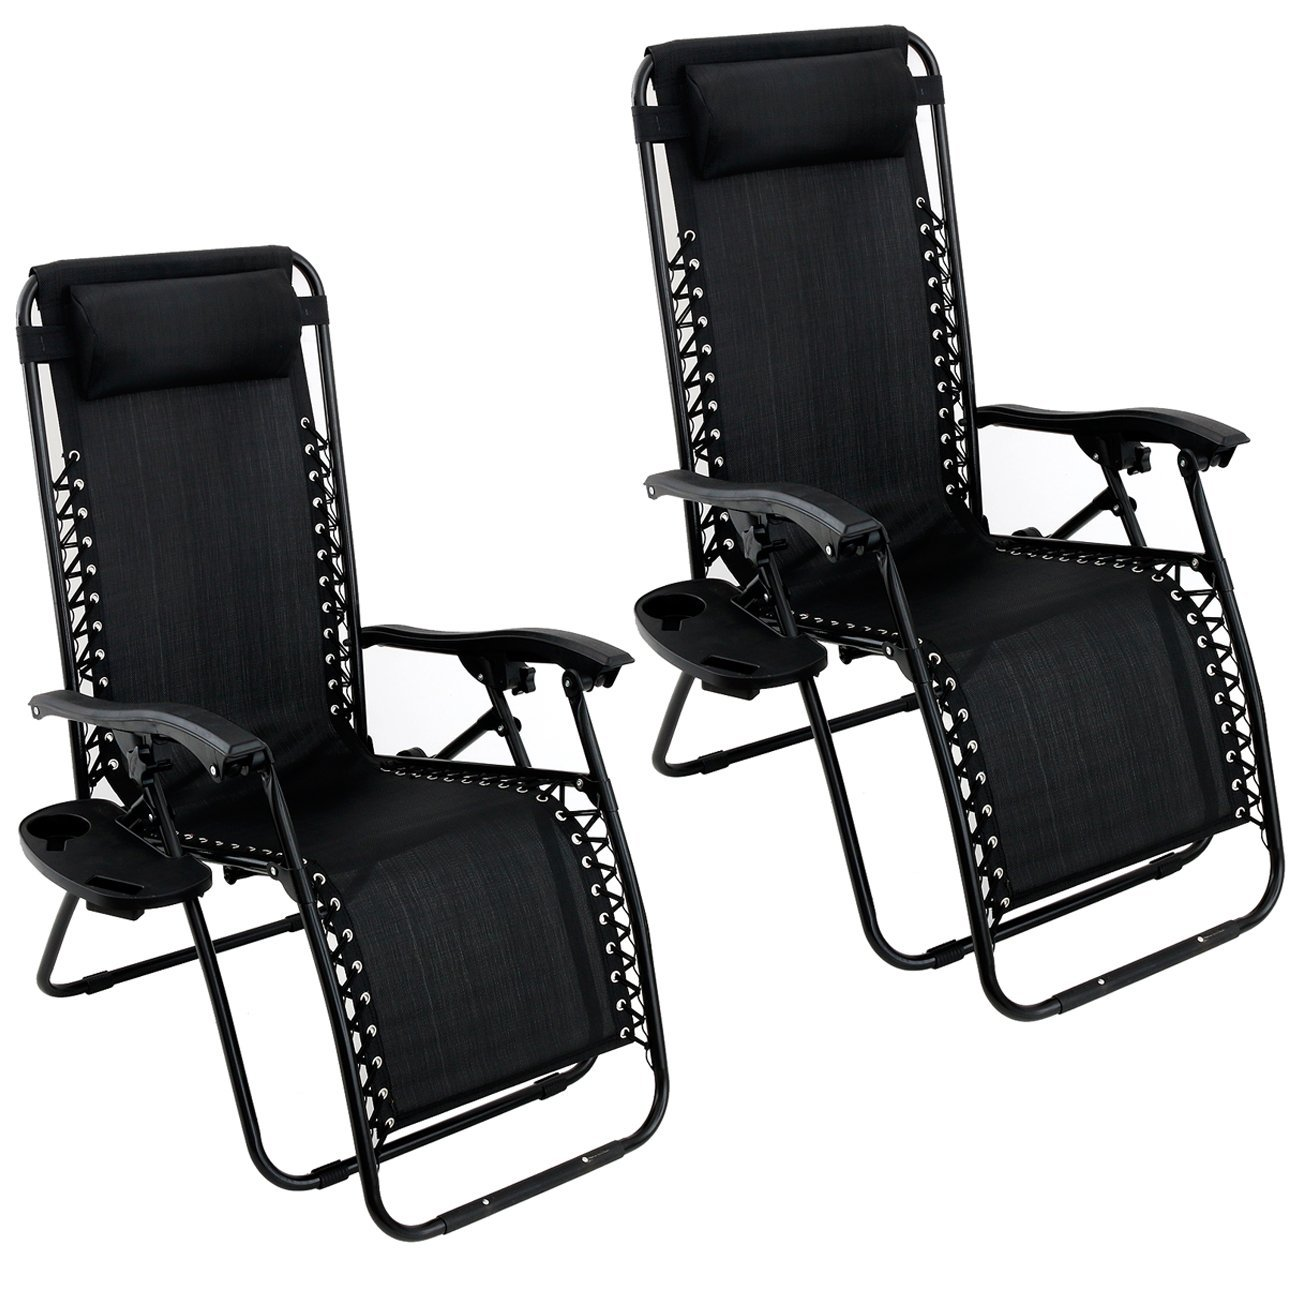 Pleasing Top 10 Best Reclining Patio Chairs 2019 Review Gmtry Best Dining Table And Chair Ideas Images Gmtryco